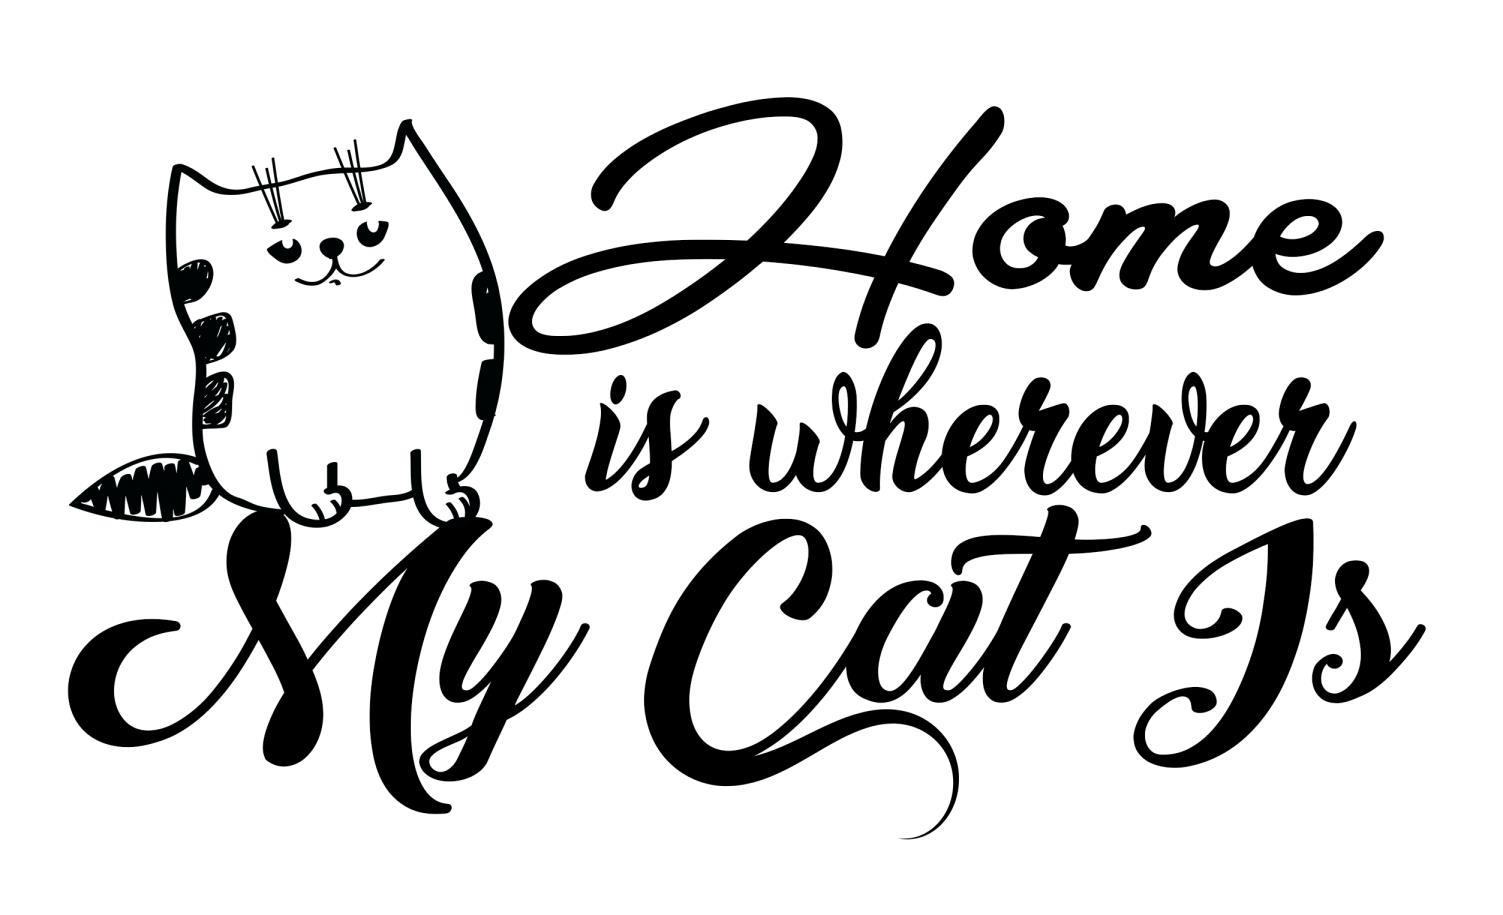 cat images with. Free clipart and downloads of little skunks sayings